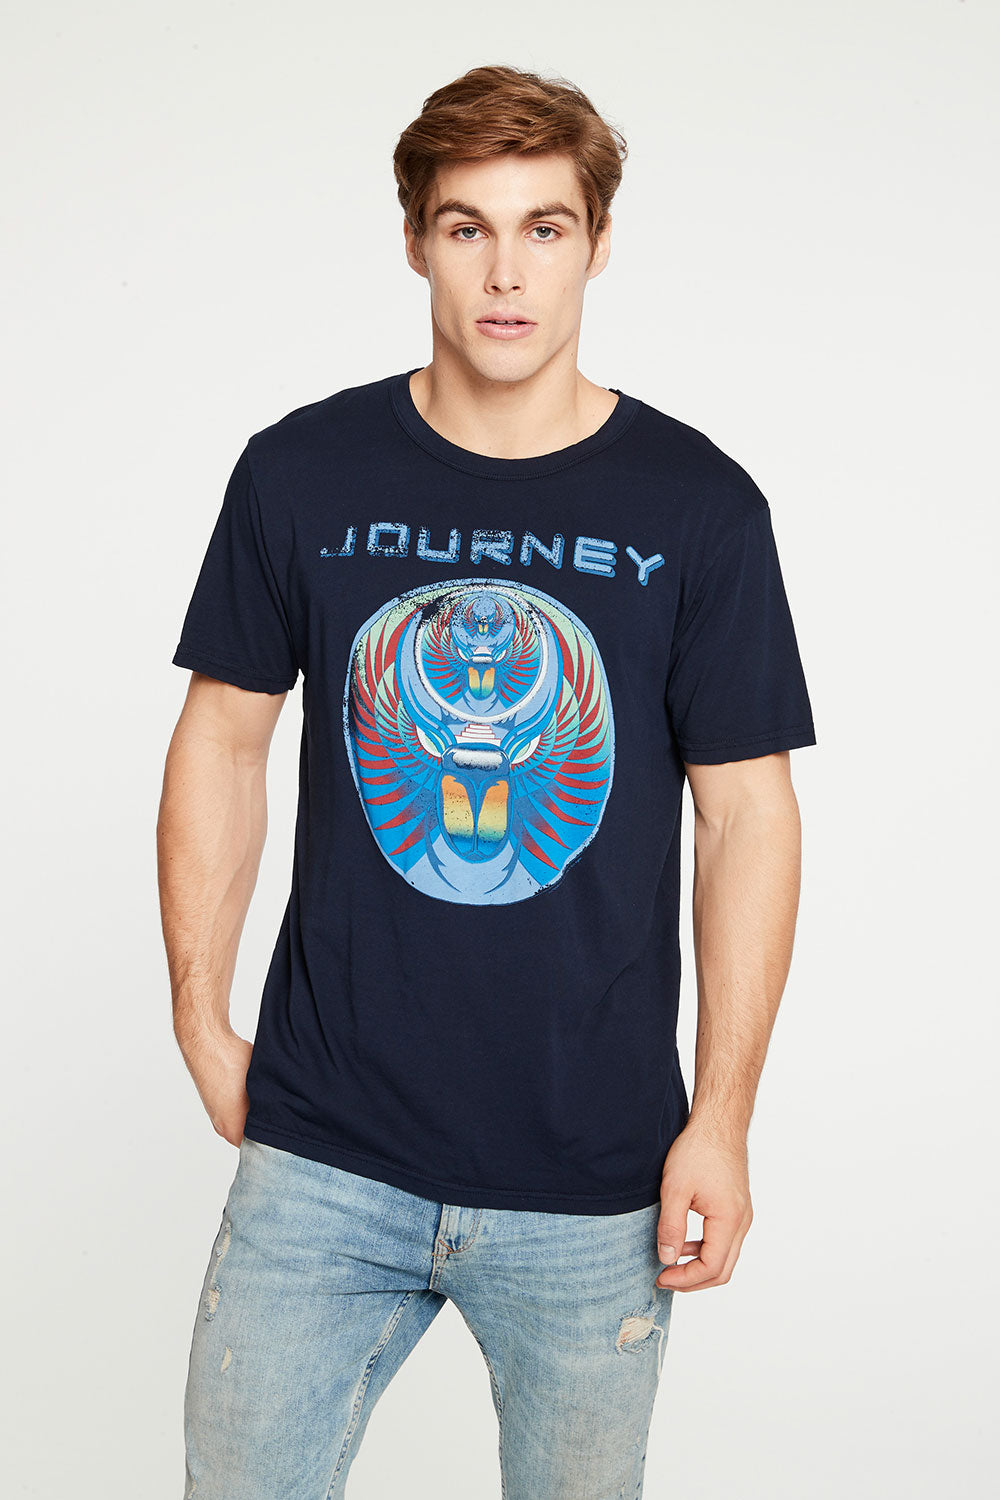 Journey - Infinity Scarab MENS chaserbrand4.myshopify.com